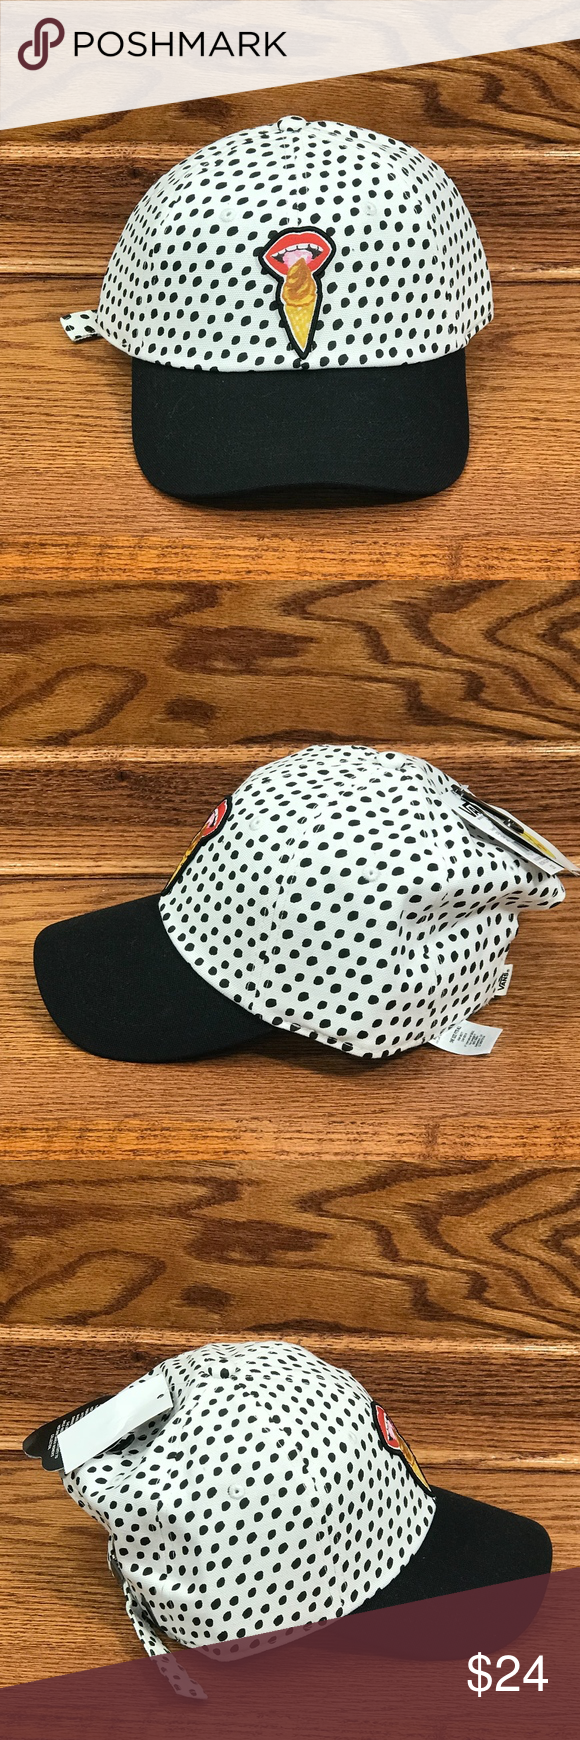 06e65675d7f Vans X Kendra Dandy Court Side Ice Cream Hat Vans X Kendra Dandy Court Side  Baseball Cap I Scream OTW Dad Hat Adjustable New with tags No stains or  tears ...